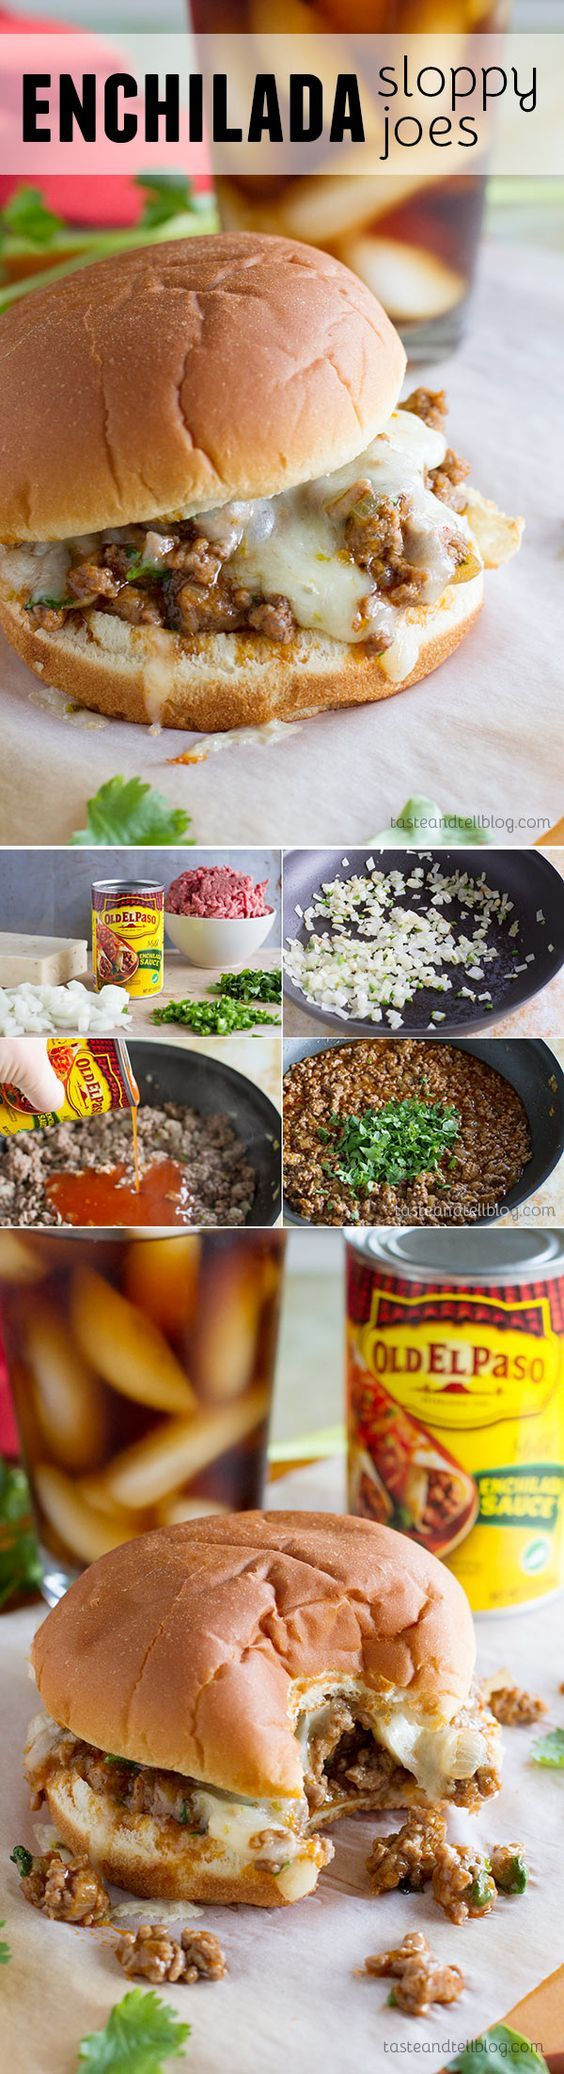 Enchilada Sloppy Joe Recipe ~ Not your typical sloppy joe recipe, these sloppy joes have an enchilada twist with delicious tex-mex flavors.